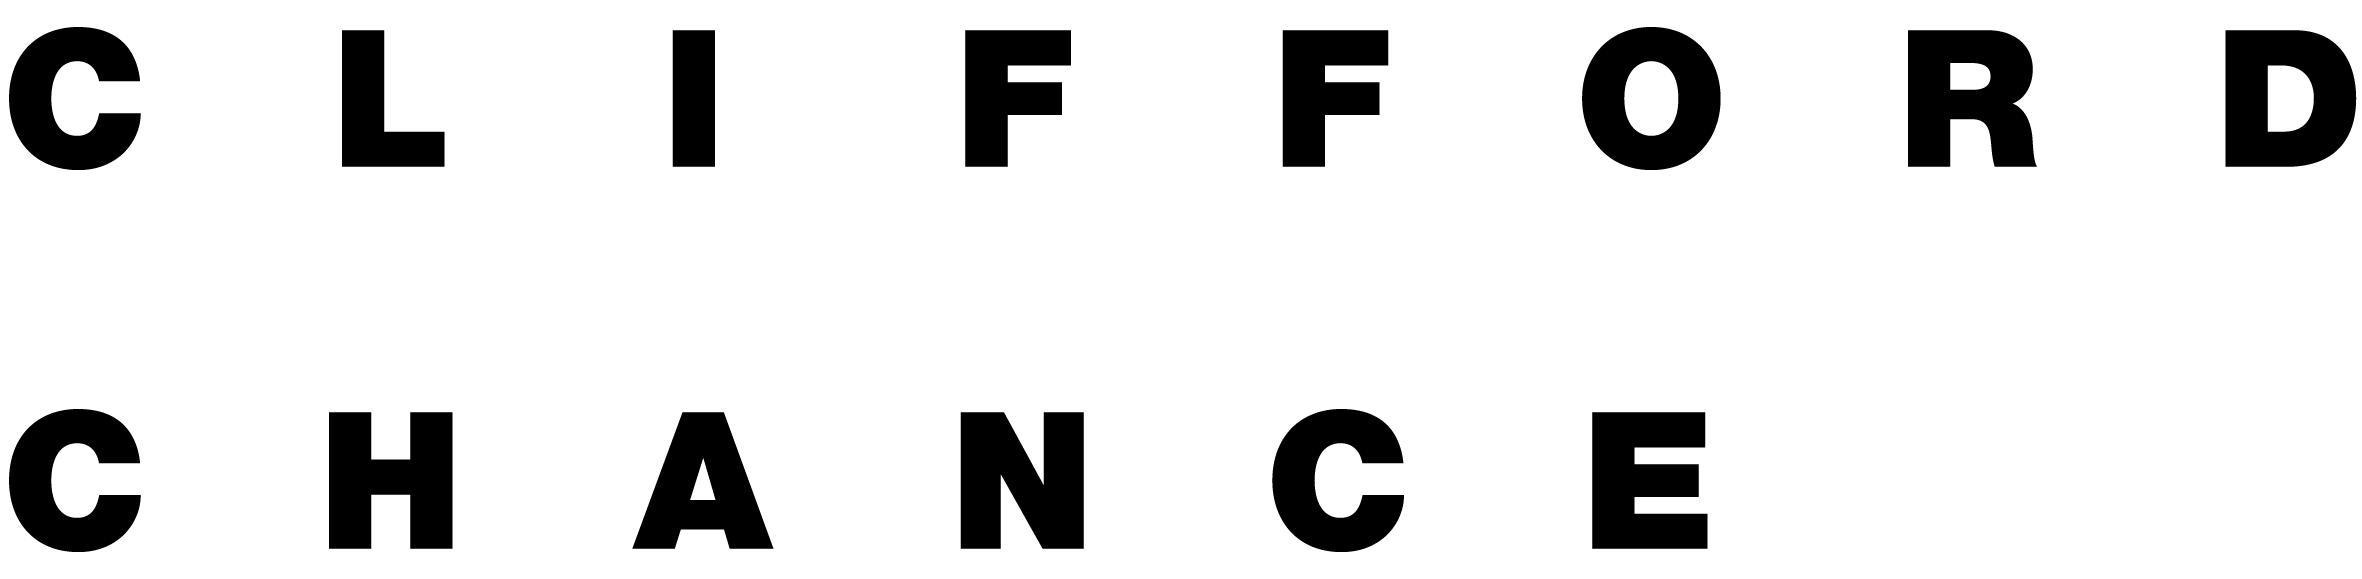 Резултат с изображение за logo clifford chance png